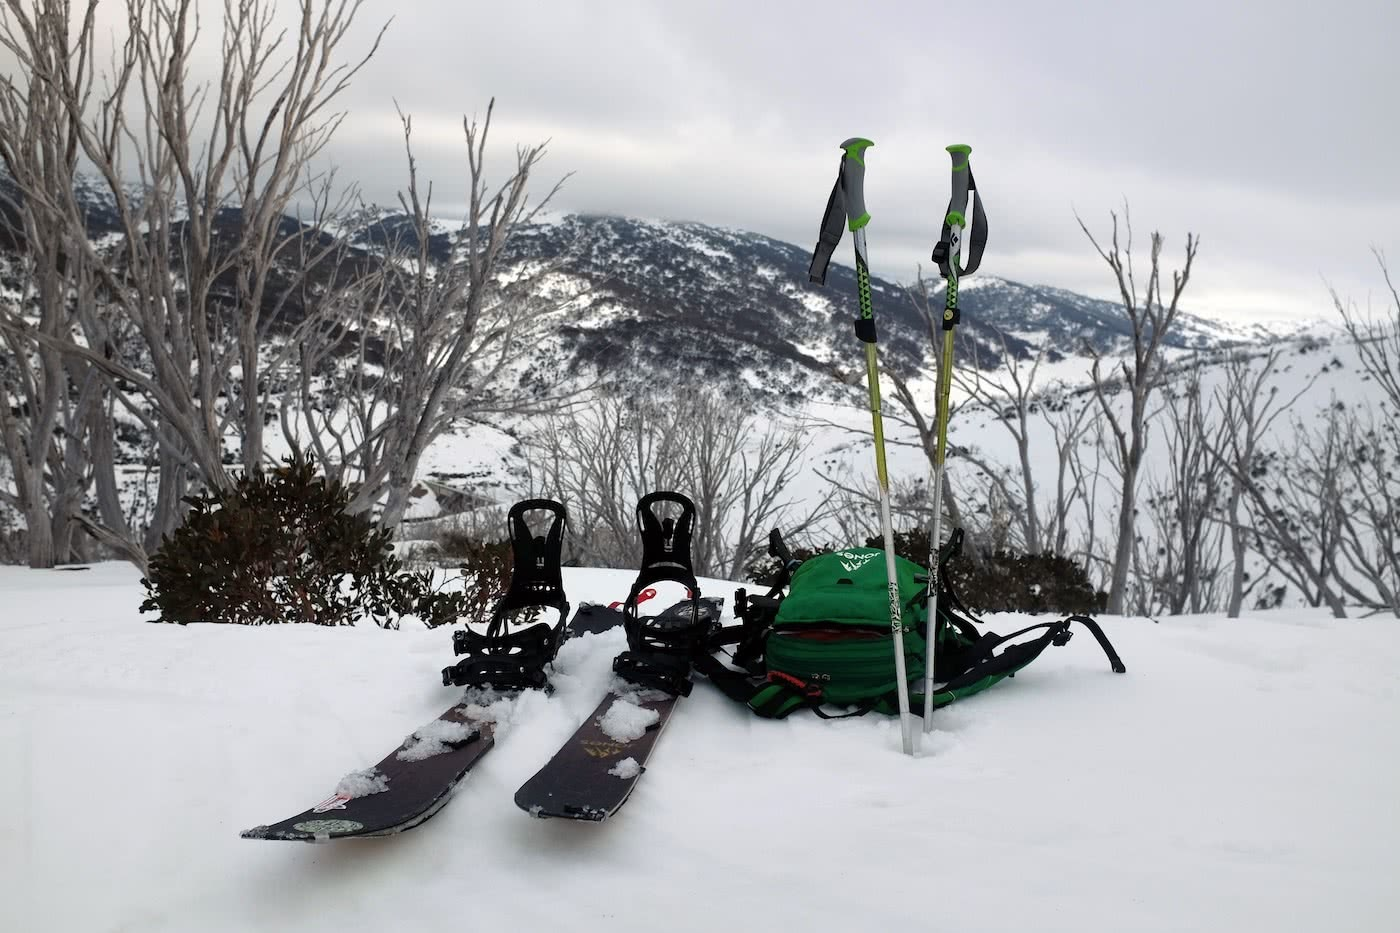 7 Rad ways to spend your $1080 tax refund by Mattie Gould, photo by Mattie Gould, splitboard hire, backcountry skiing